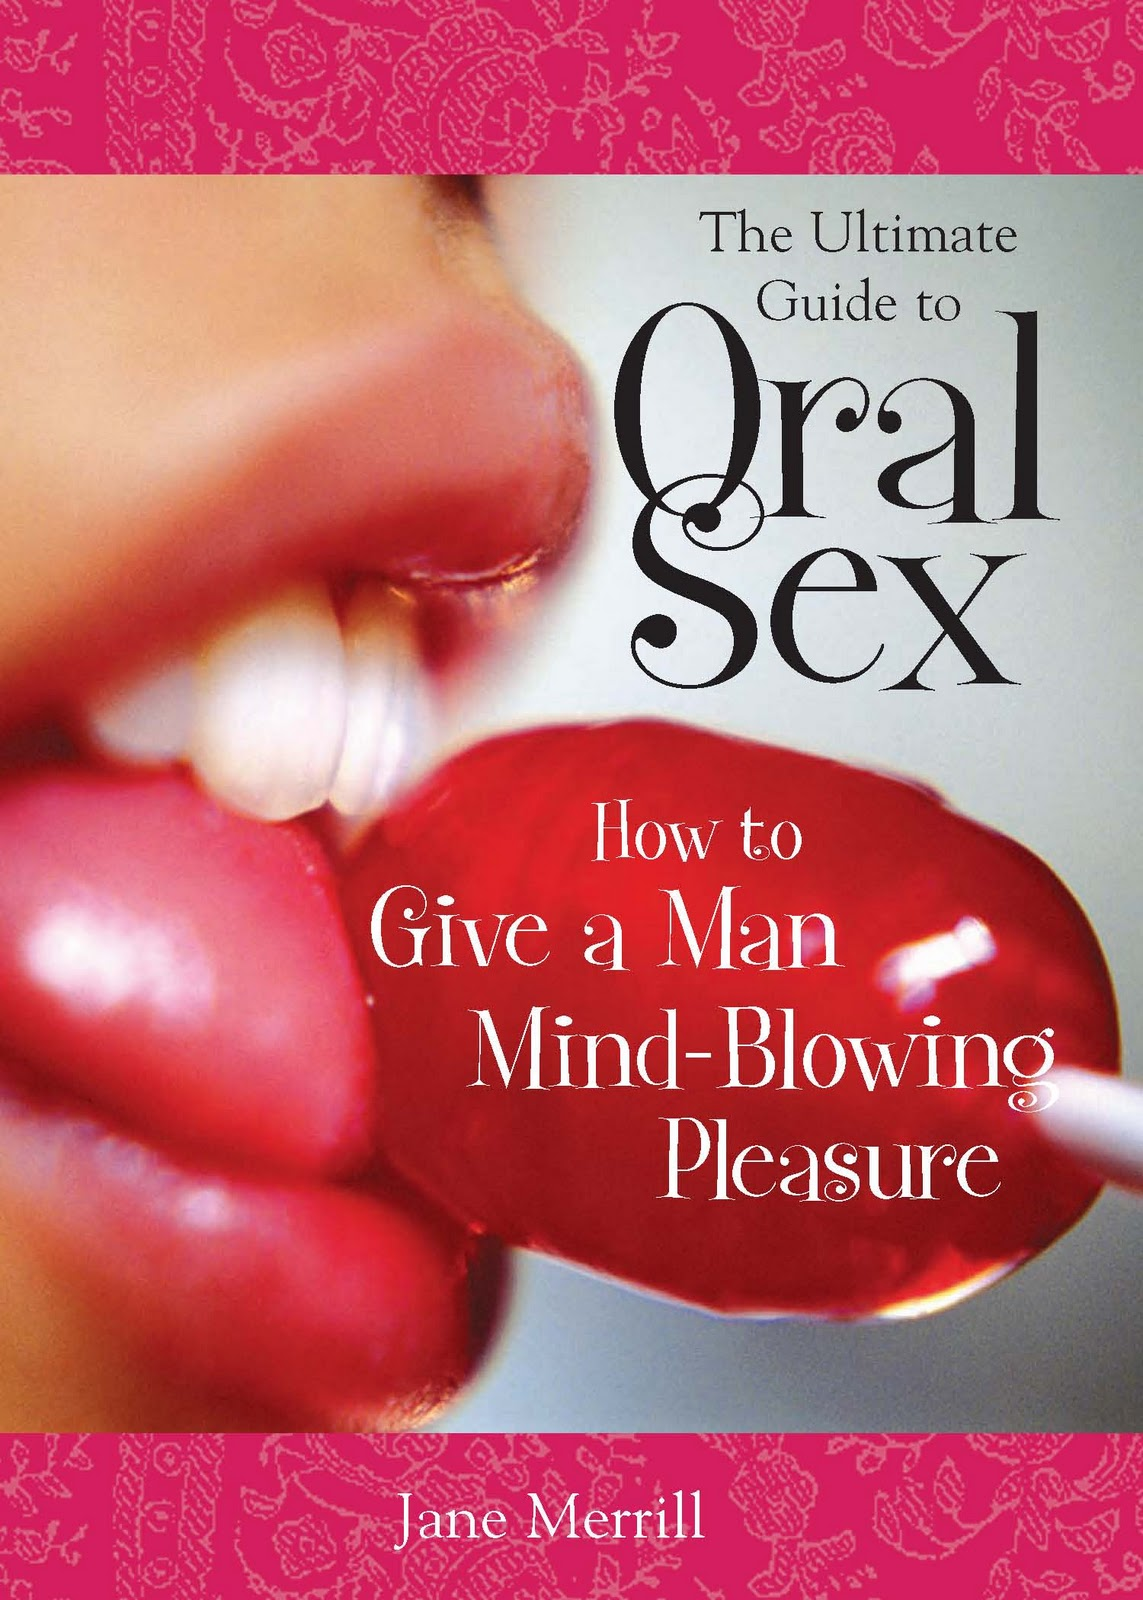 How to give good oral sex to women